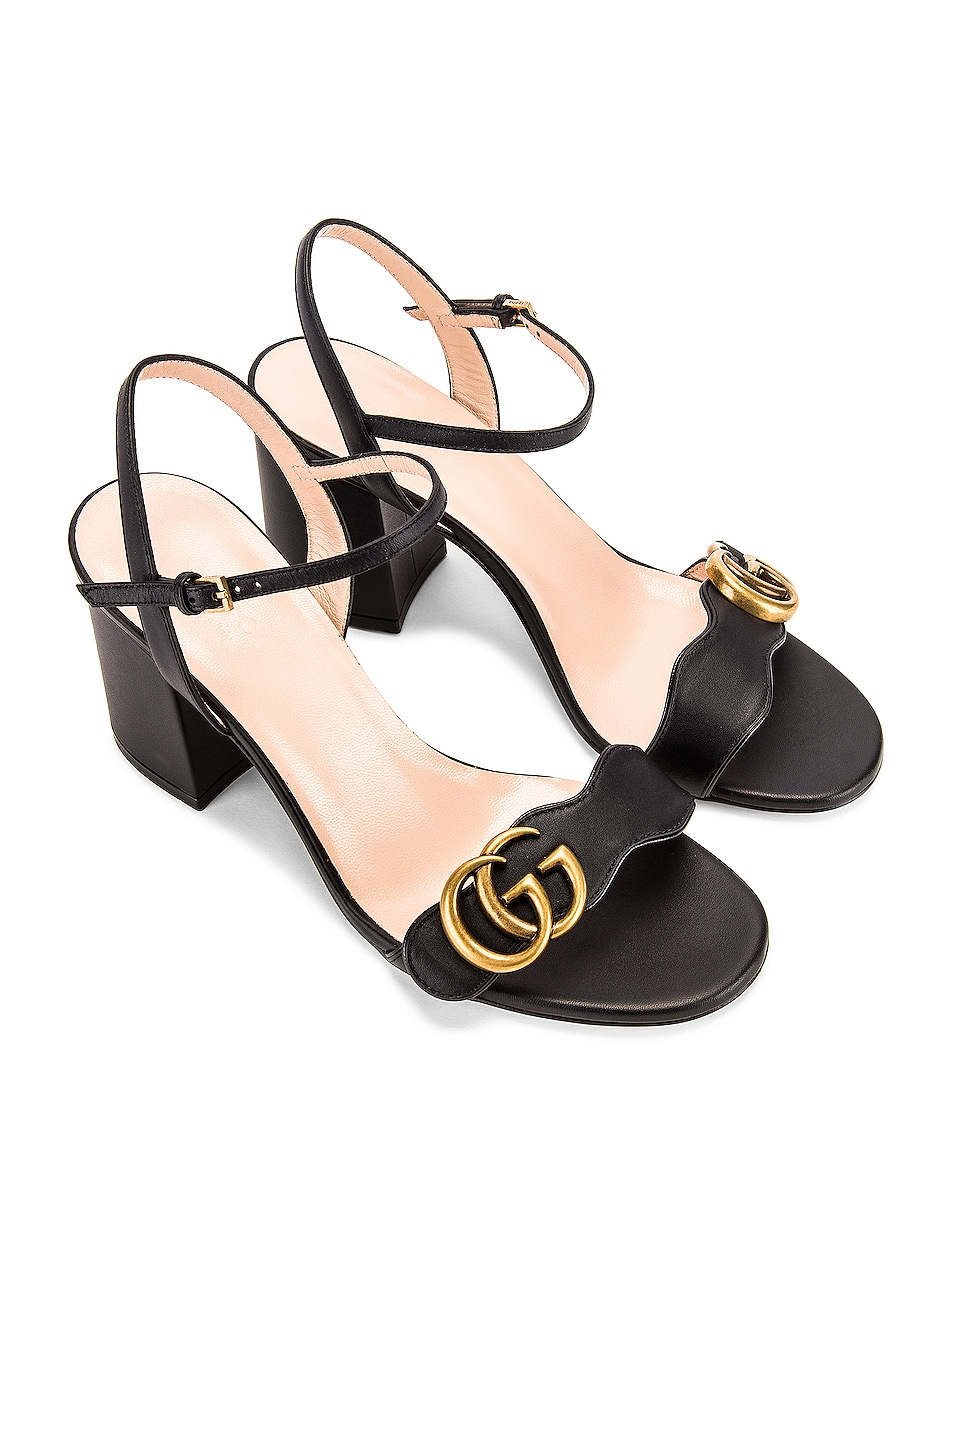 Image 1 of Gucci Leather Mid Heel Sandals in Black